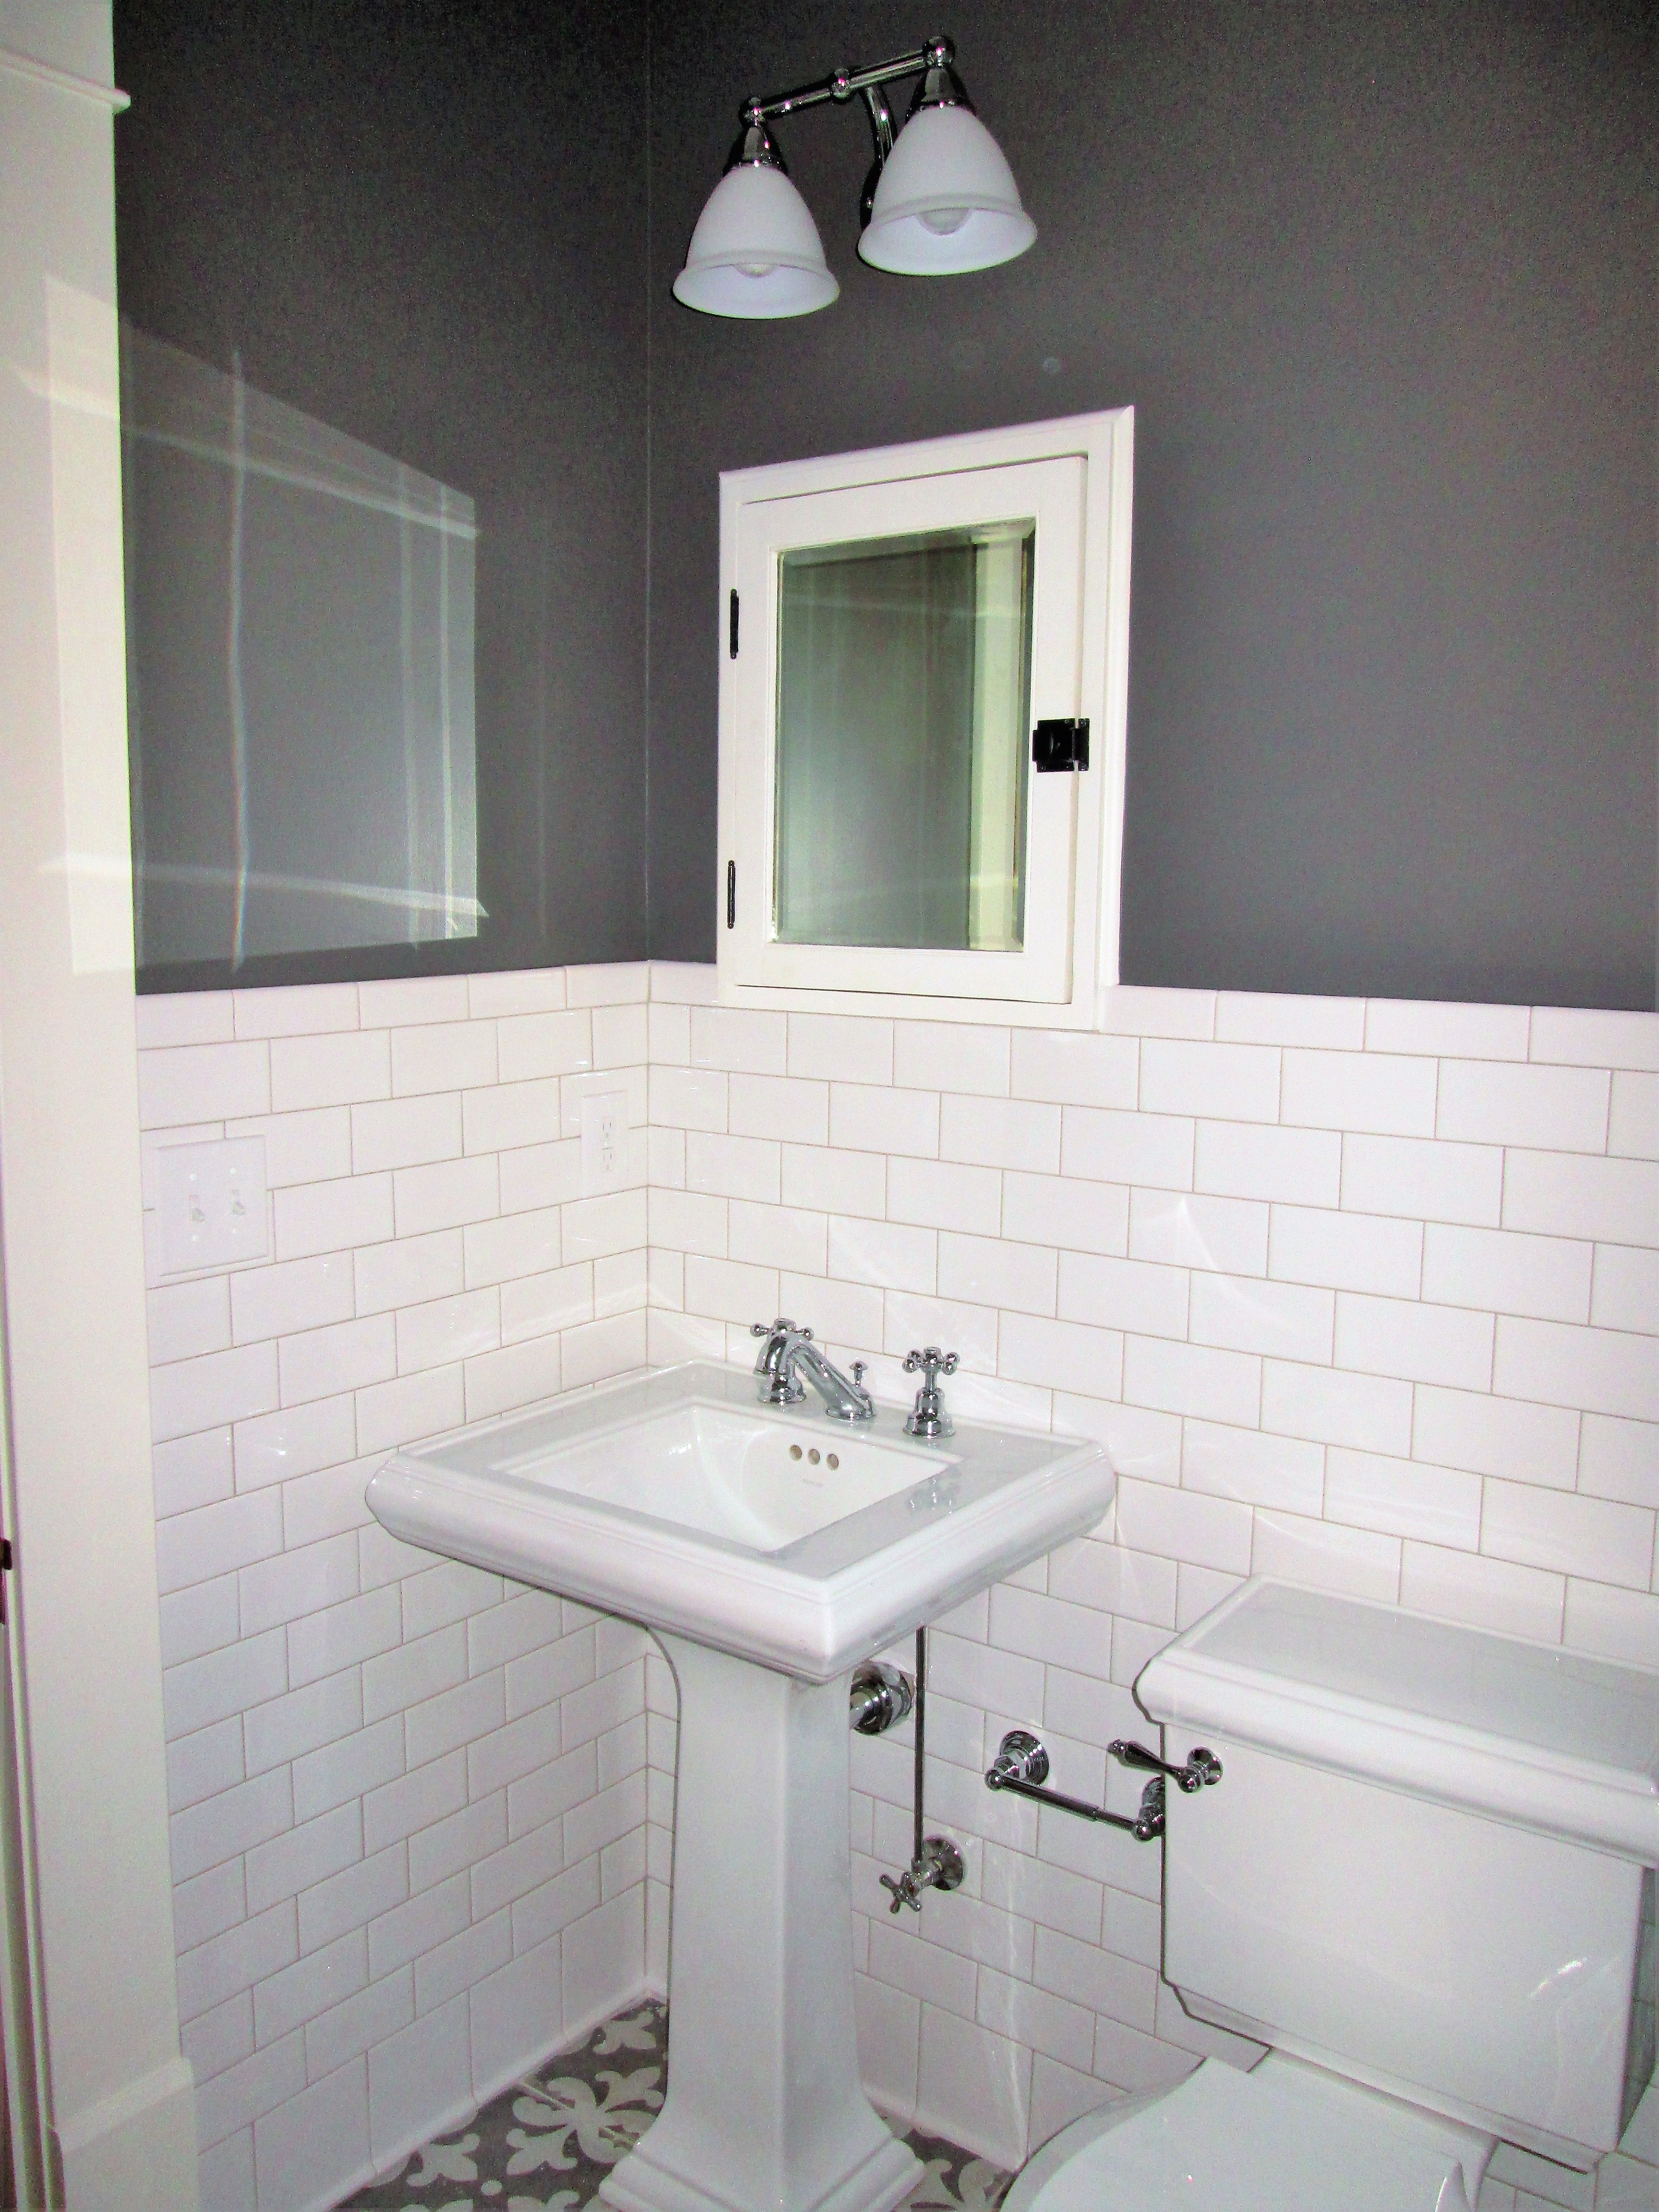 Small bath remodel in gray and white with pedestal sink inset